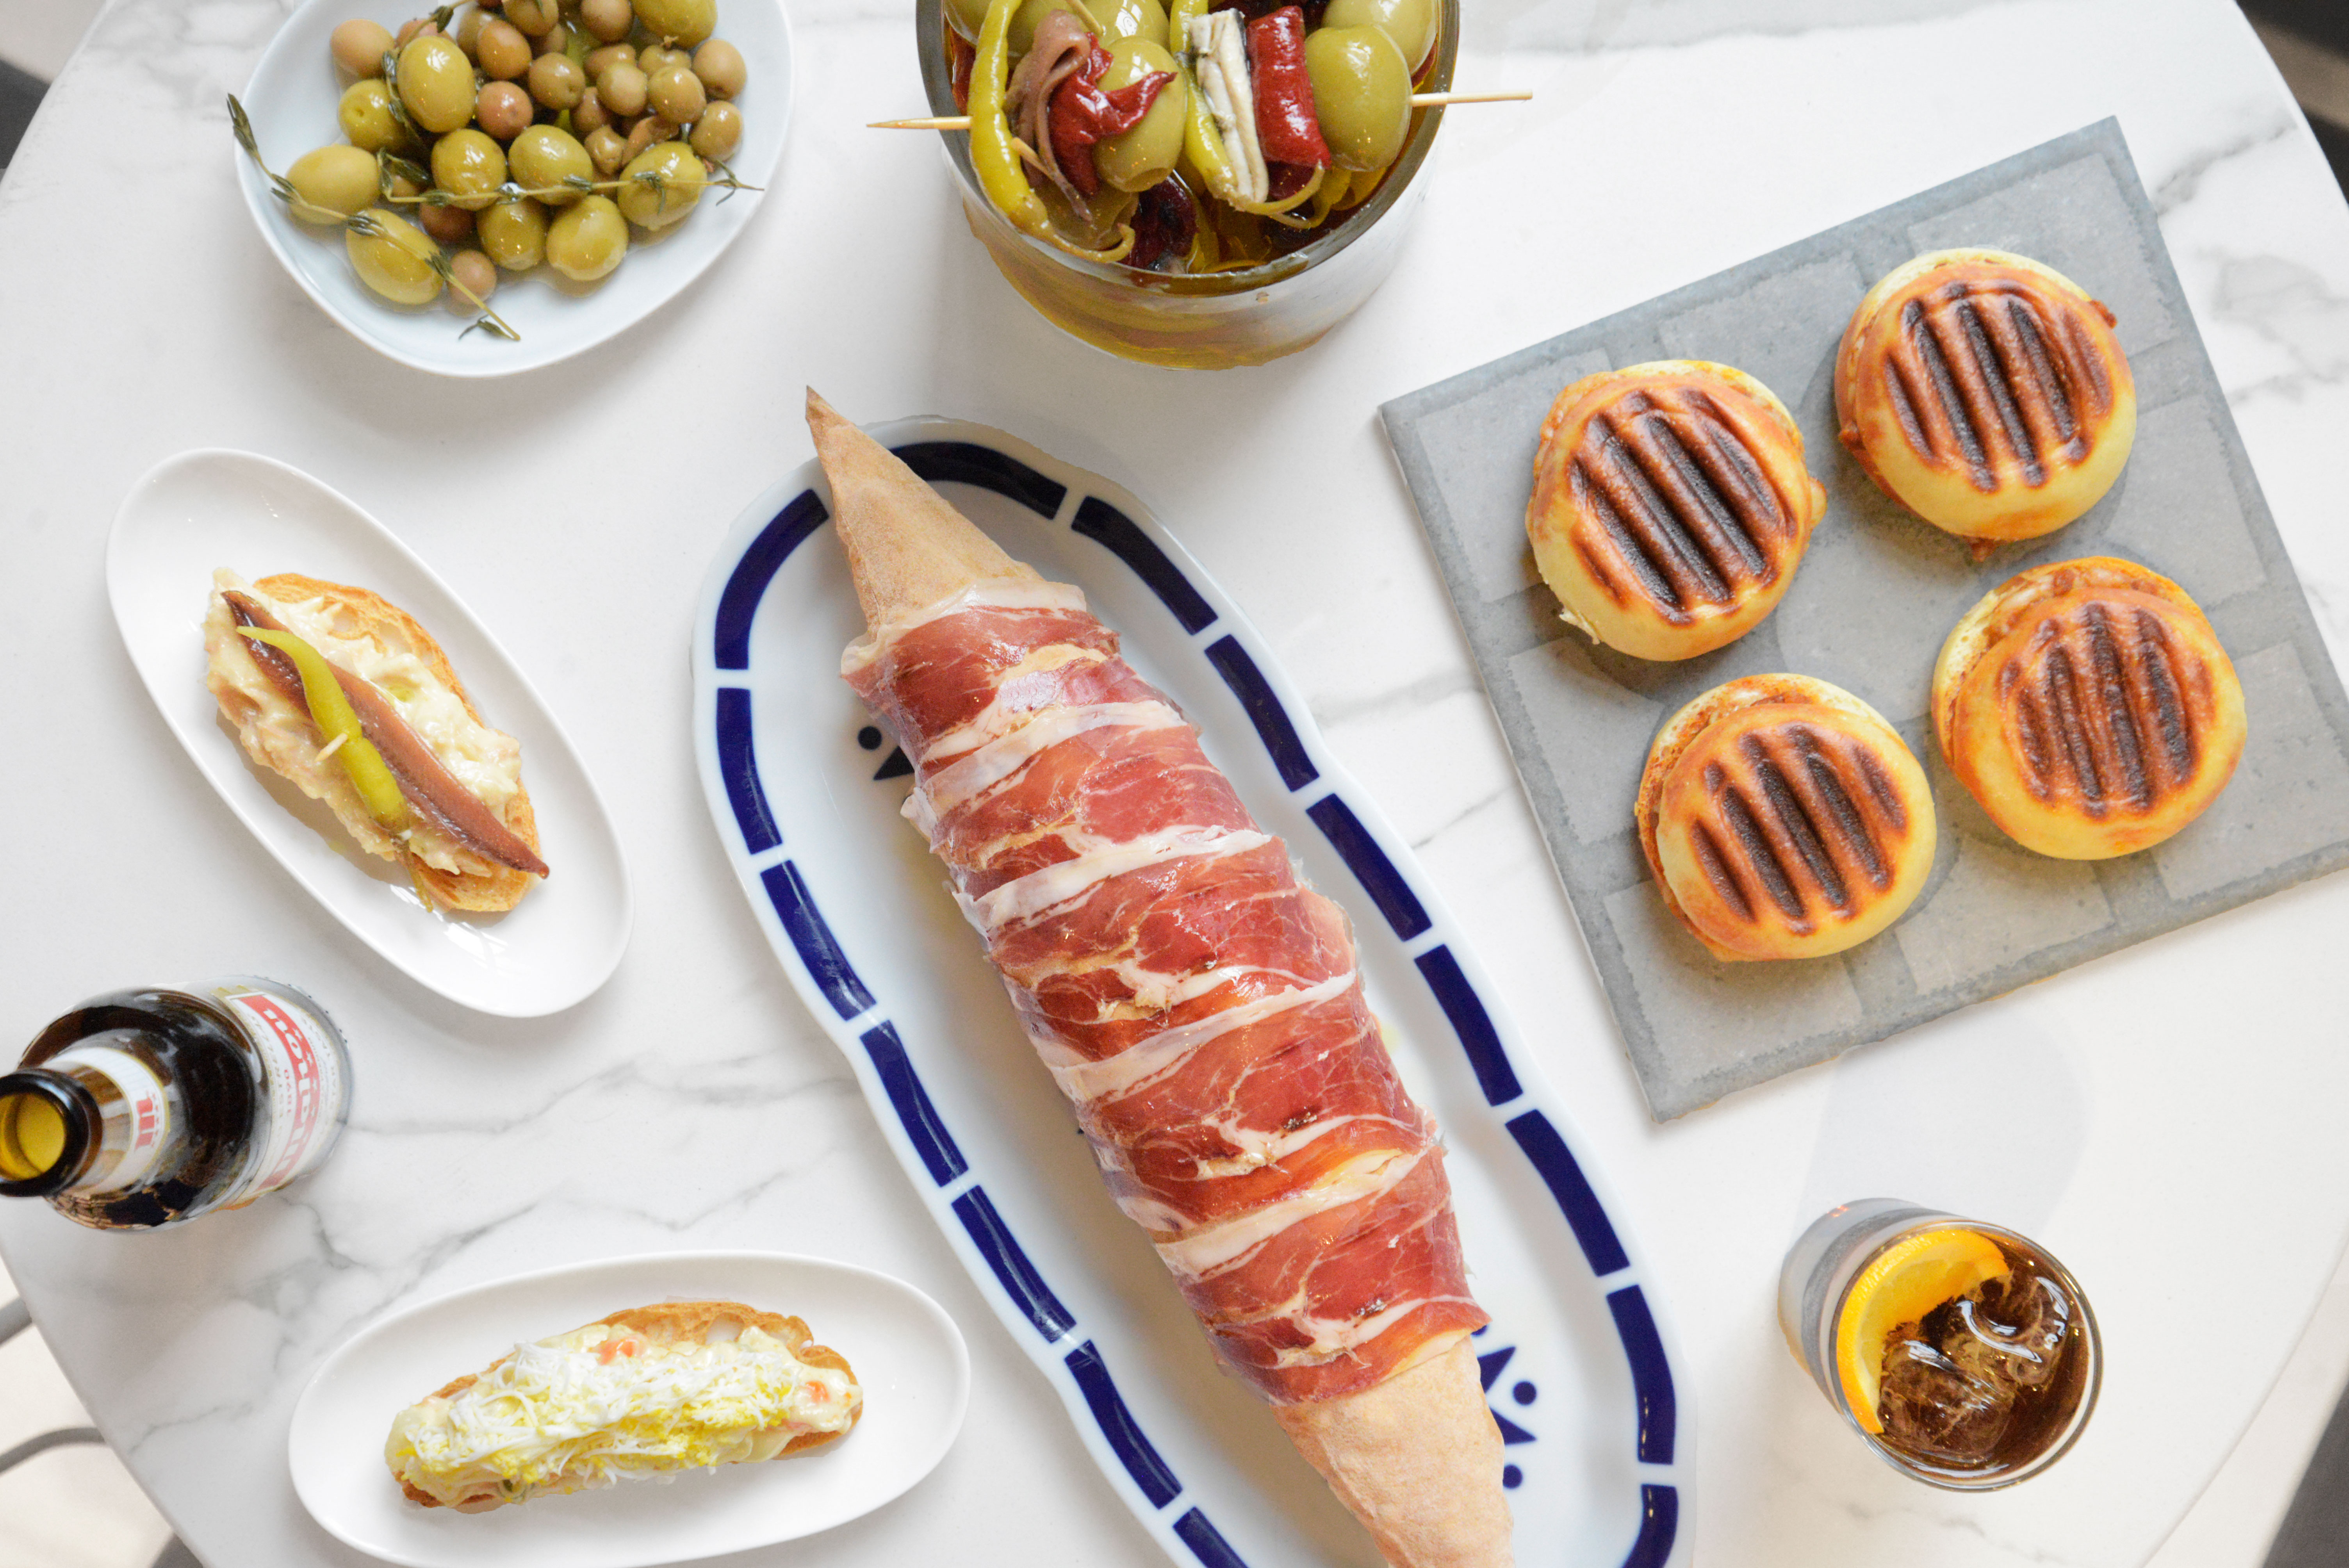 A marble table that's topped with several dishes include a baguette wrapped in prosciutto, a bowl of olives, and a cocktail.